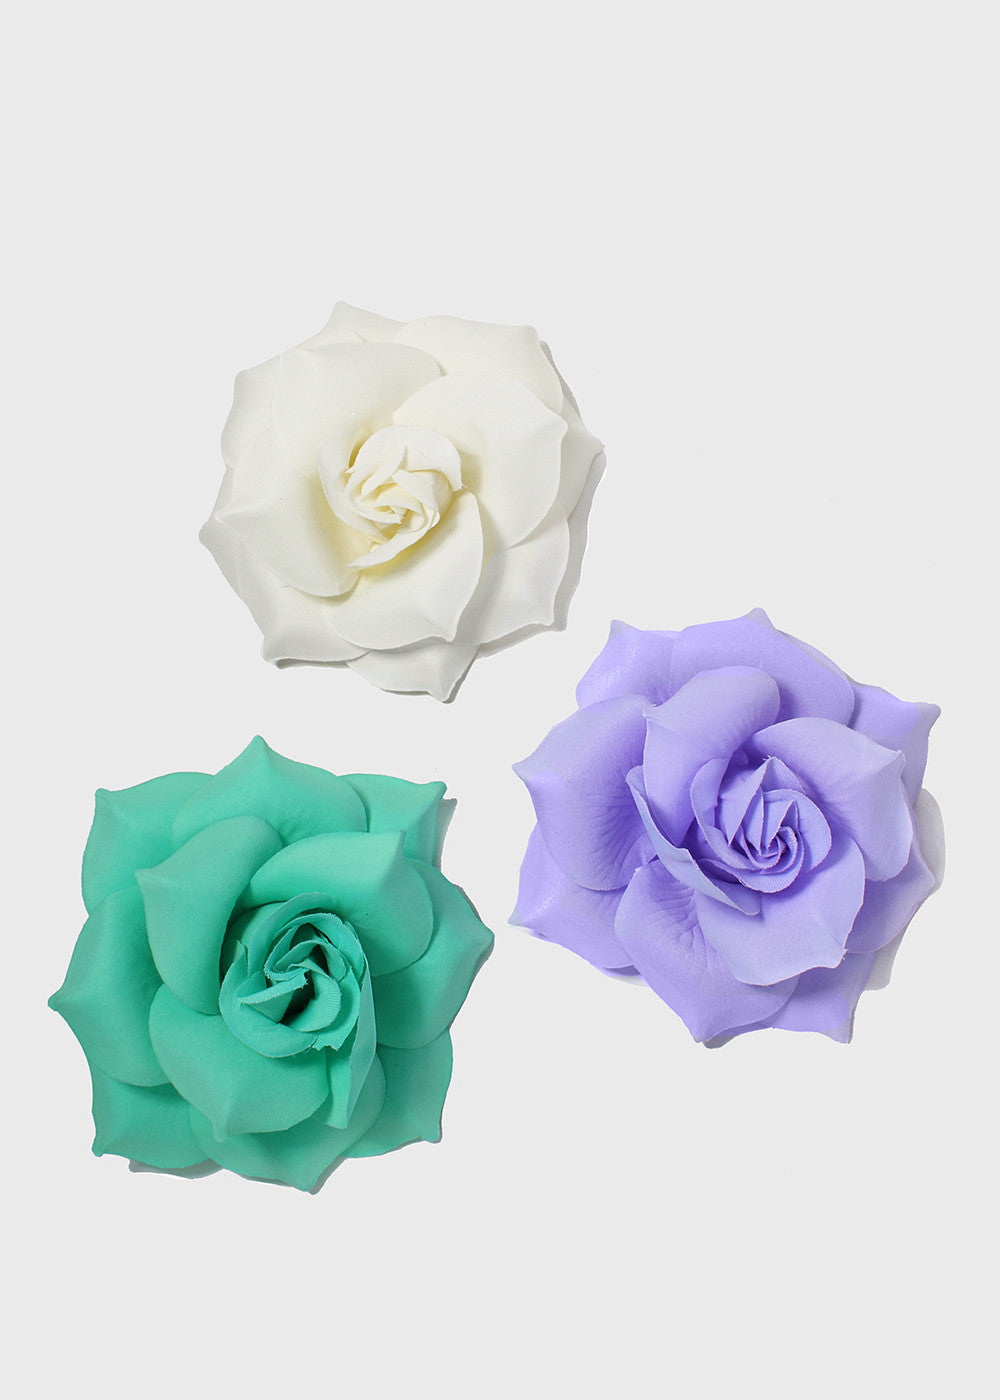 White Garden Rose Hair white garden rose hair curling simulation silk flower heads